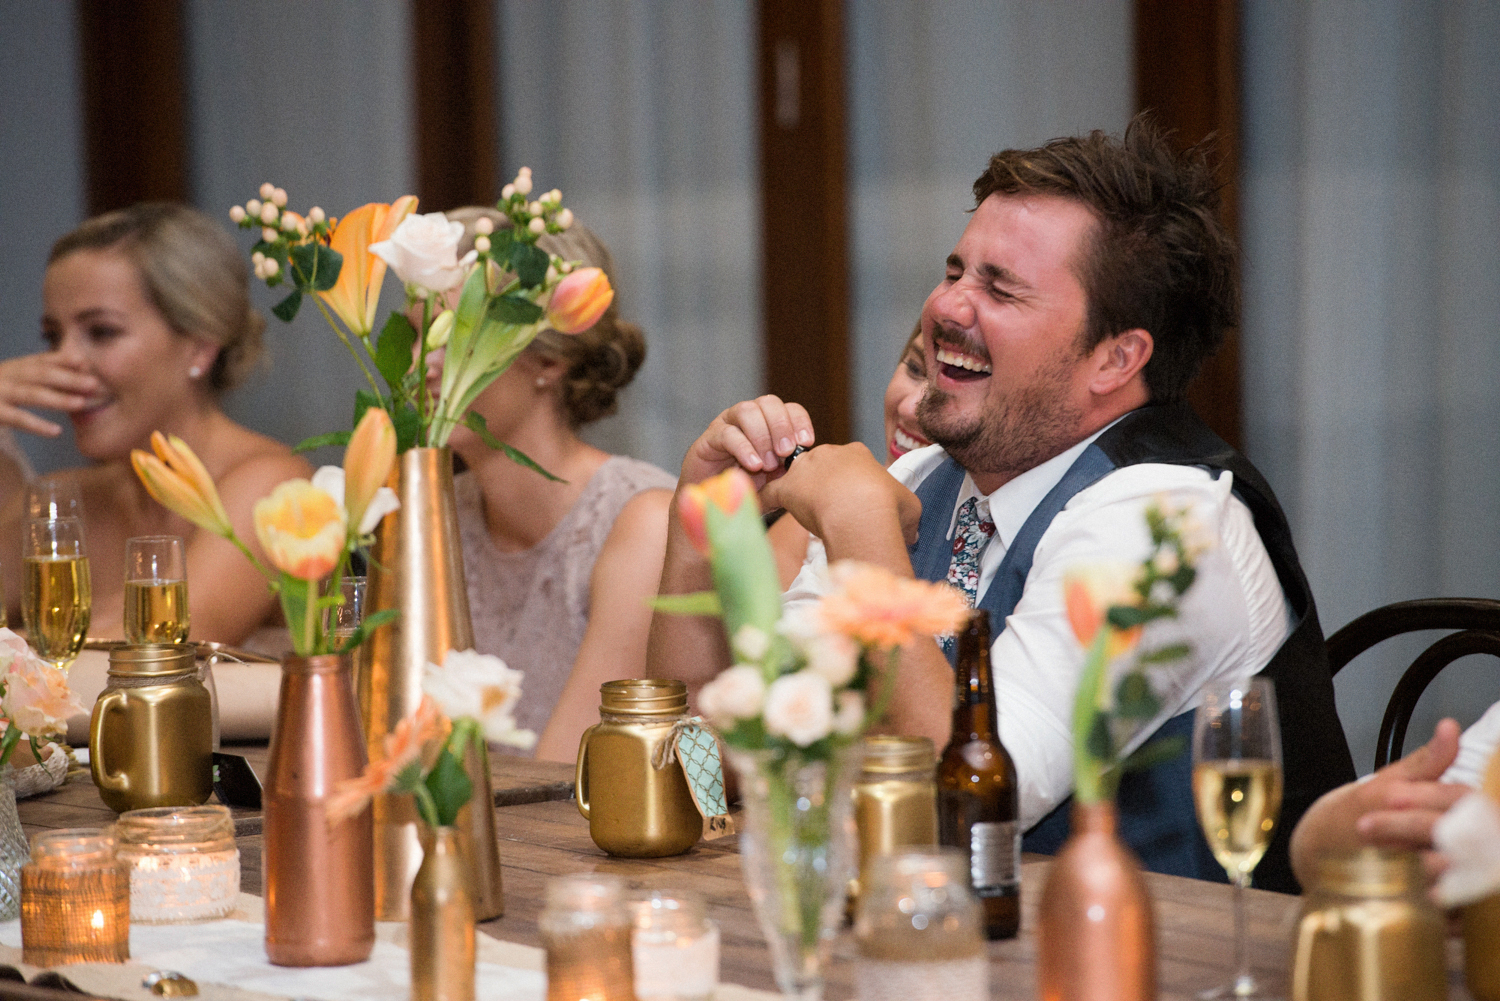 wedding speeches are awesome